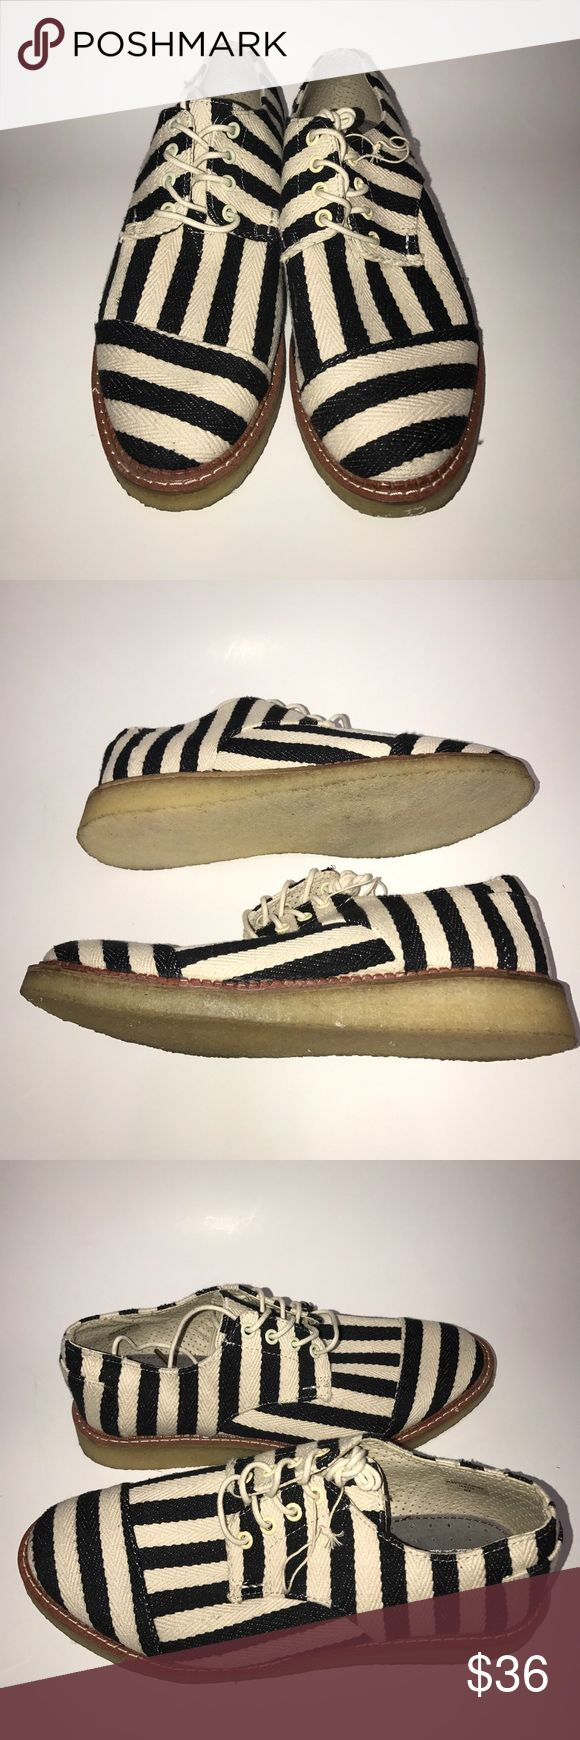 """Toms Men Shoe Black and White Stripe Size 9m New Shoe 9/10 Never worn. Toms Men Shoe Black and White Stripe Size 9m TOMS:""""With every pair purchased TOMS with give a pair to child in need. """" Toms Shoes Chukka Boots"""